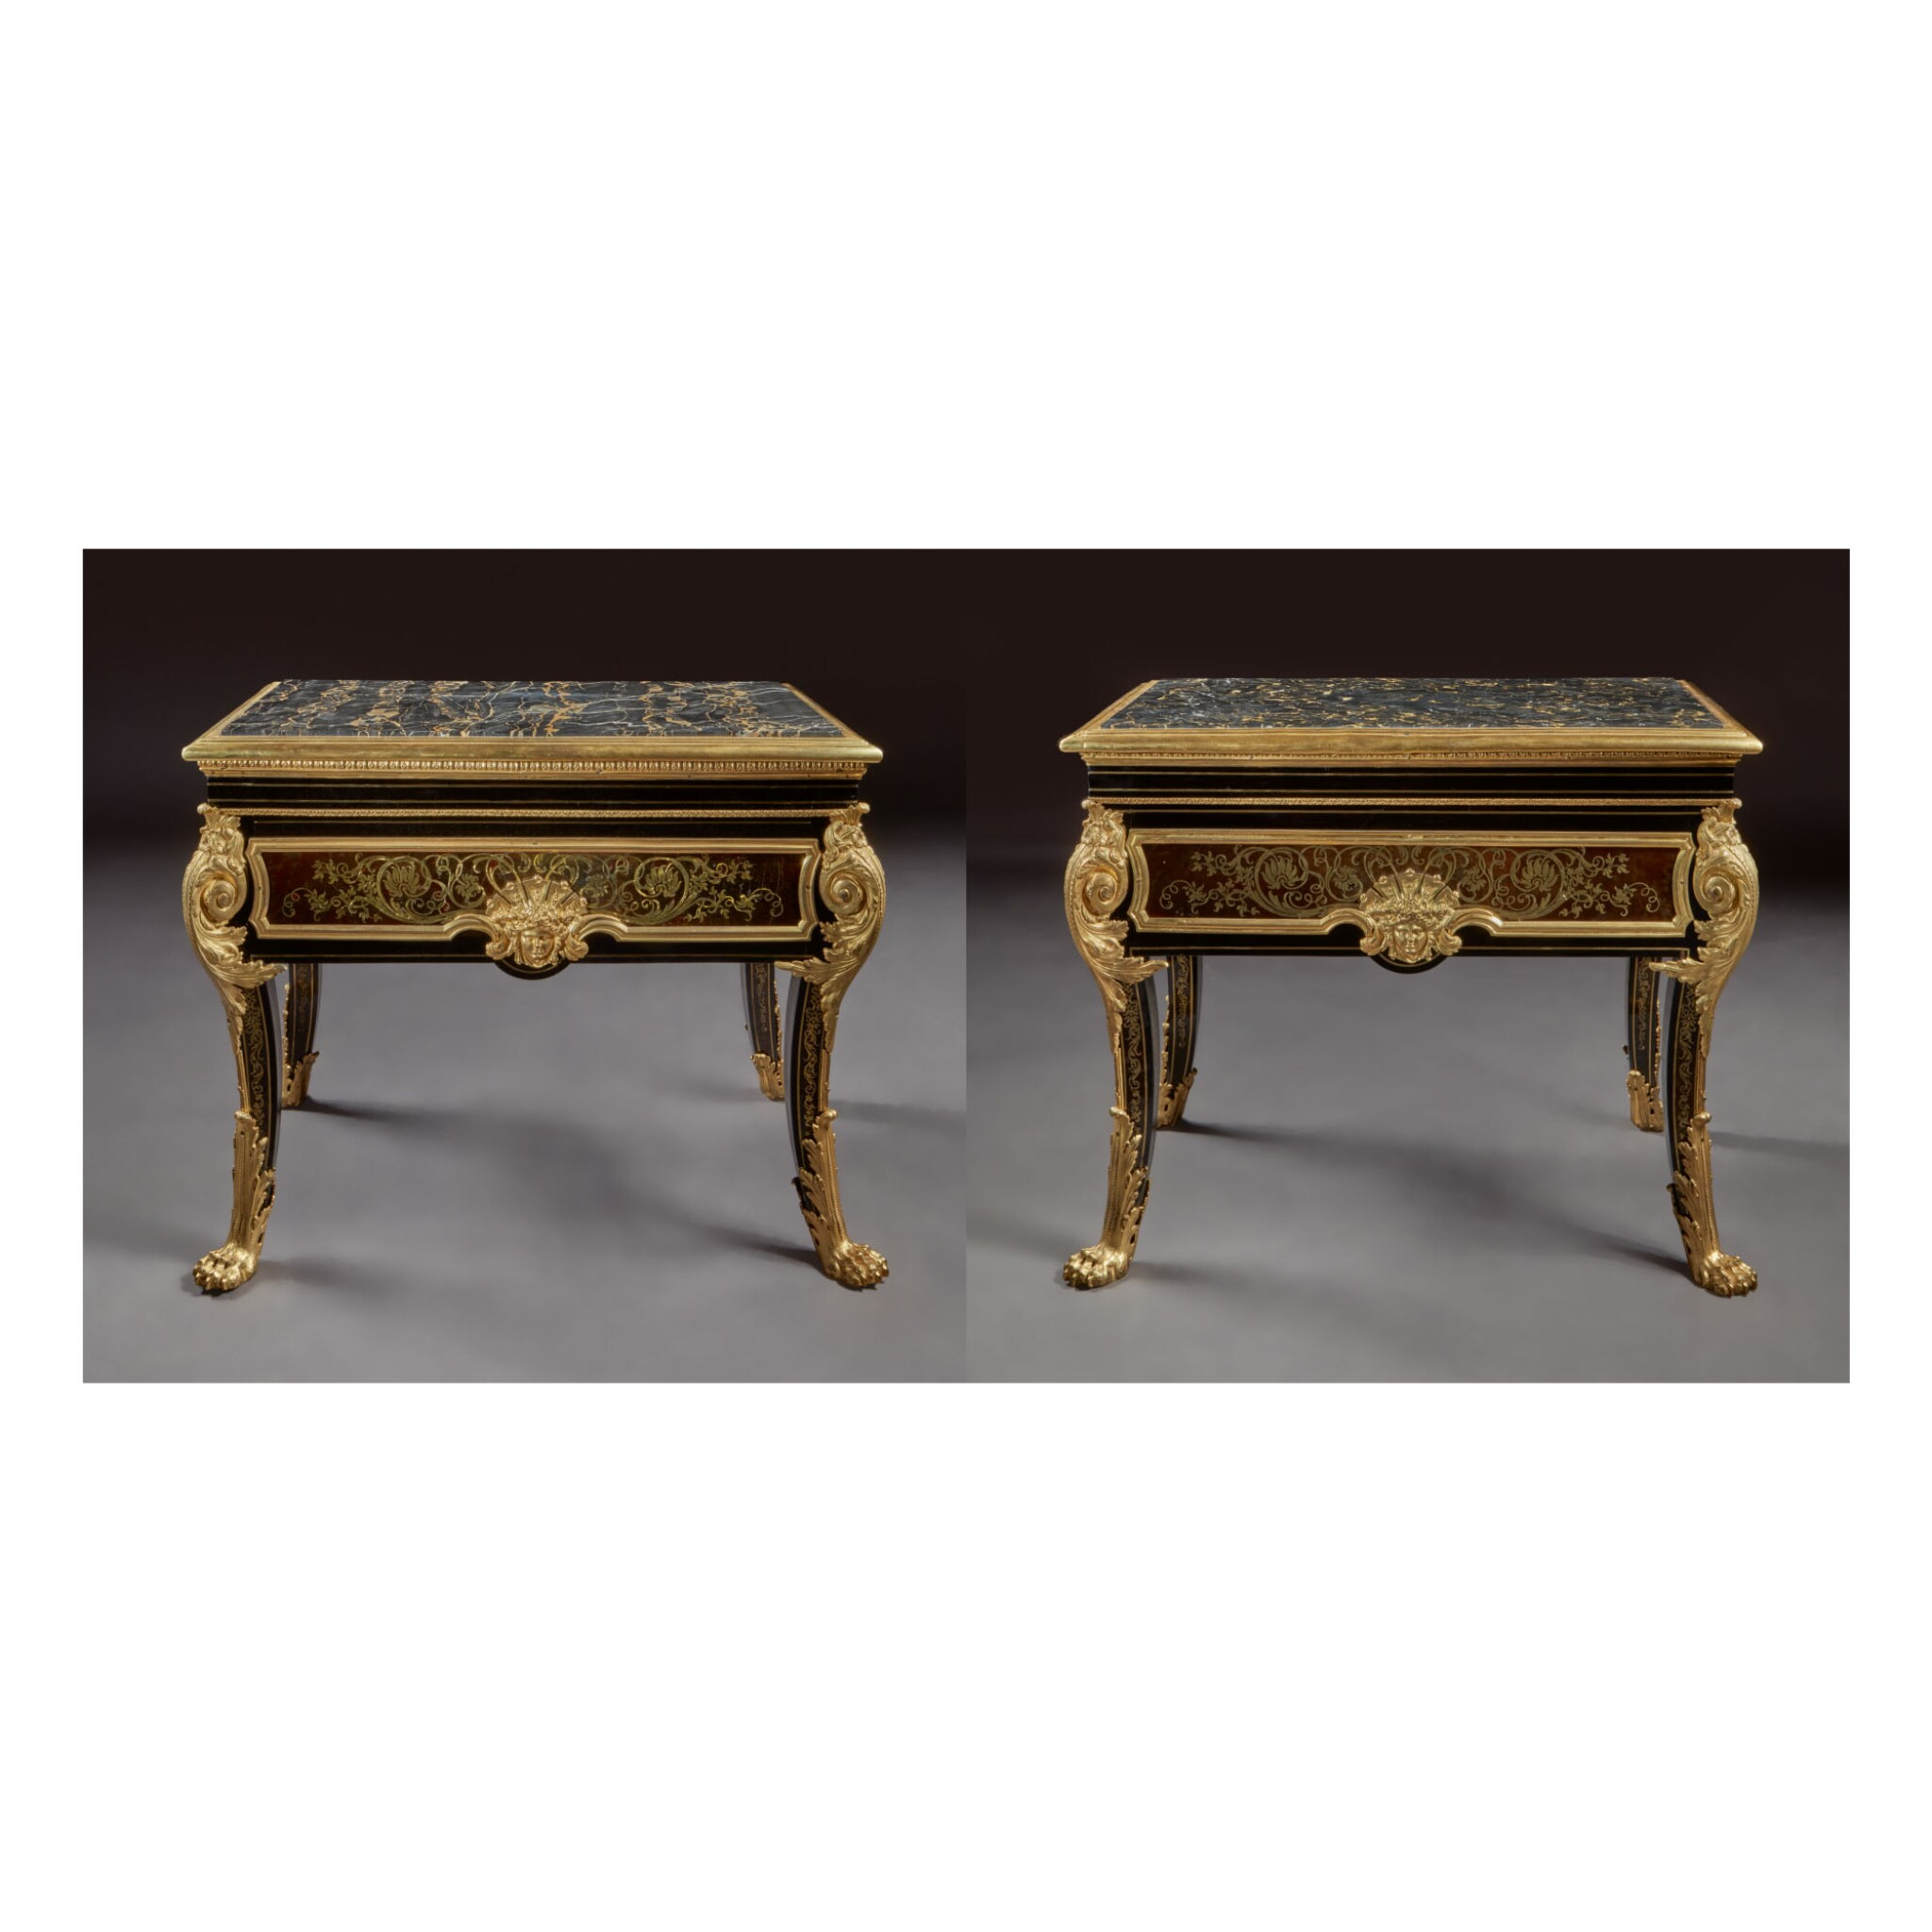 A PAIR OF LOUIS XIV GILT BRONZE-MOUNTED EBONY AND BRASS AND TORTOISESHELL PREMIERE PARTIE MARQUETRY TABLES EN HUCHE ATTRIBUTED TO ANDRE-CHARLES BOULLE, CIRCA 1700, PROBABLY ADAPTED FROM A BUREAU PLAT IN THE MID-18TH CENTURY